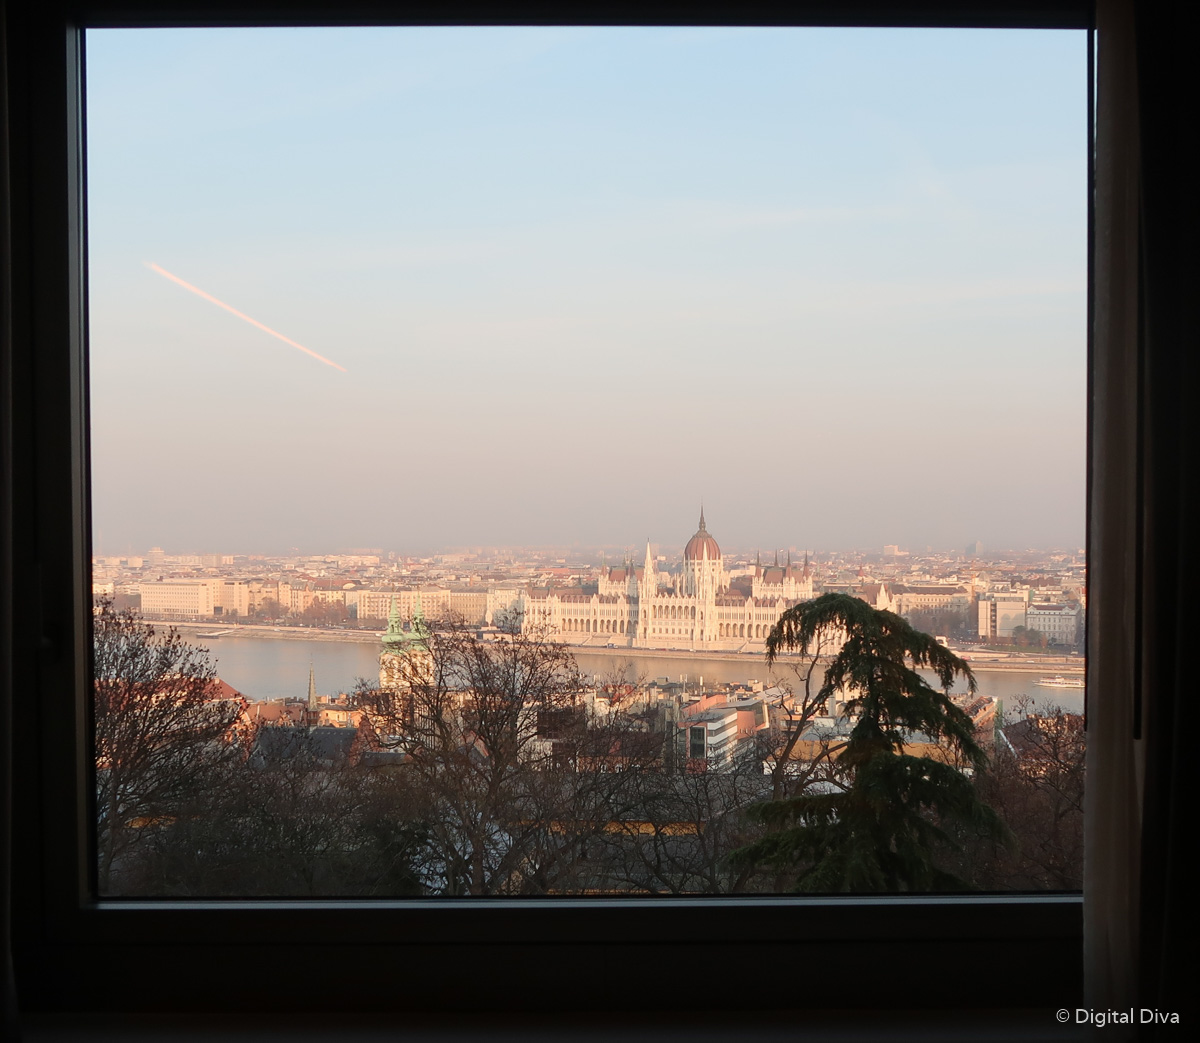 The Room's View